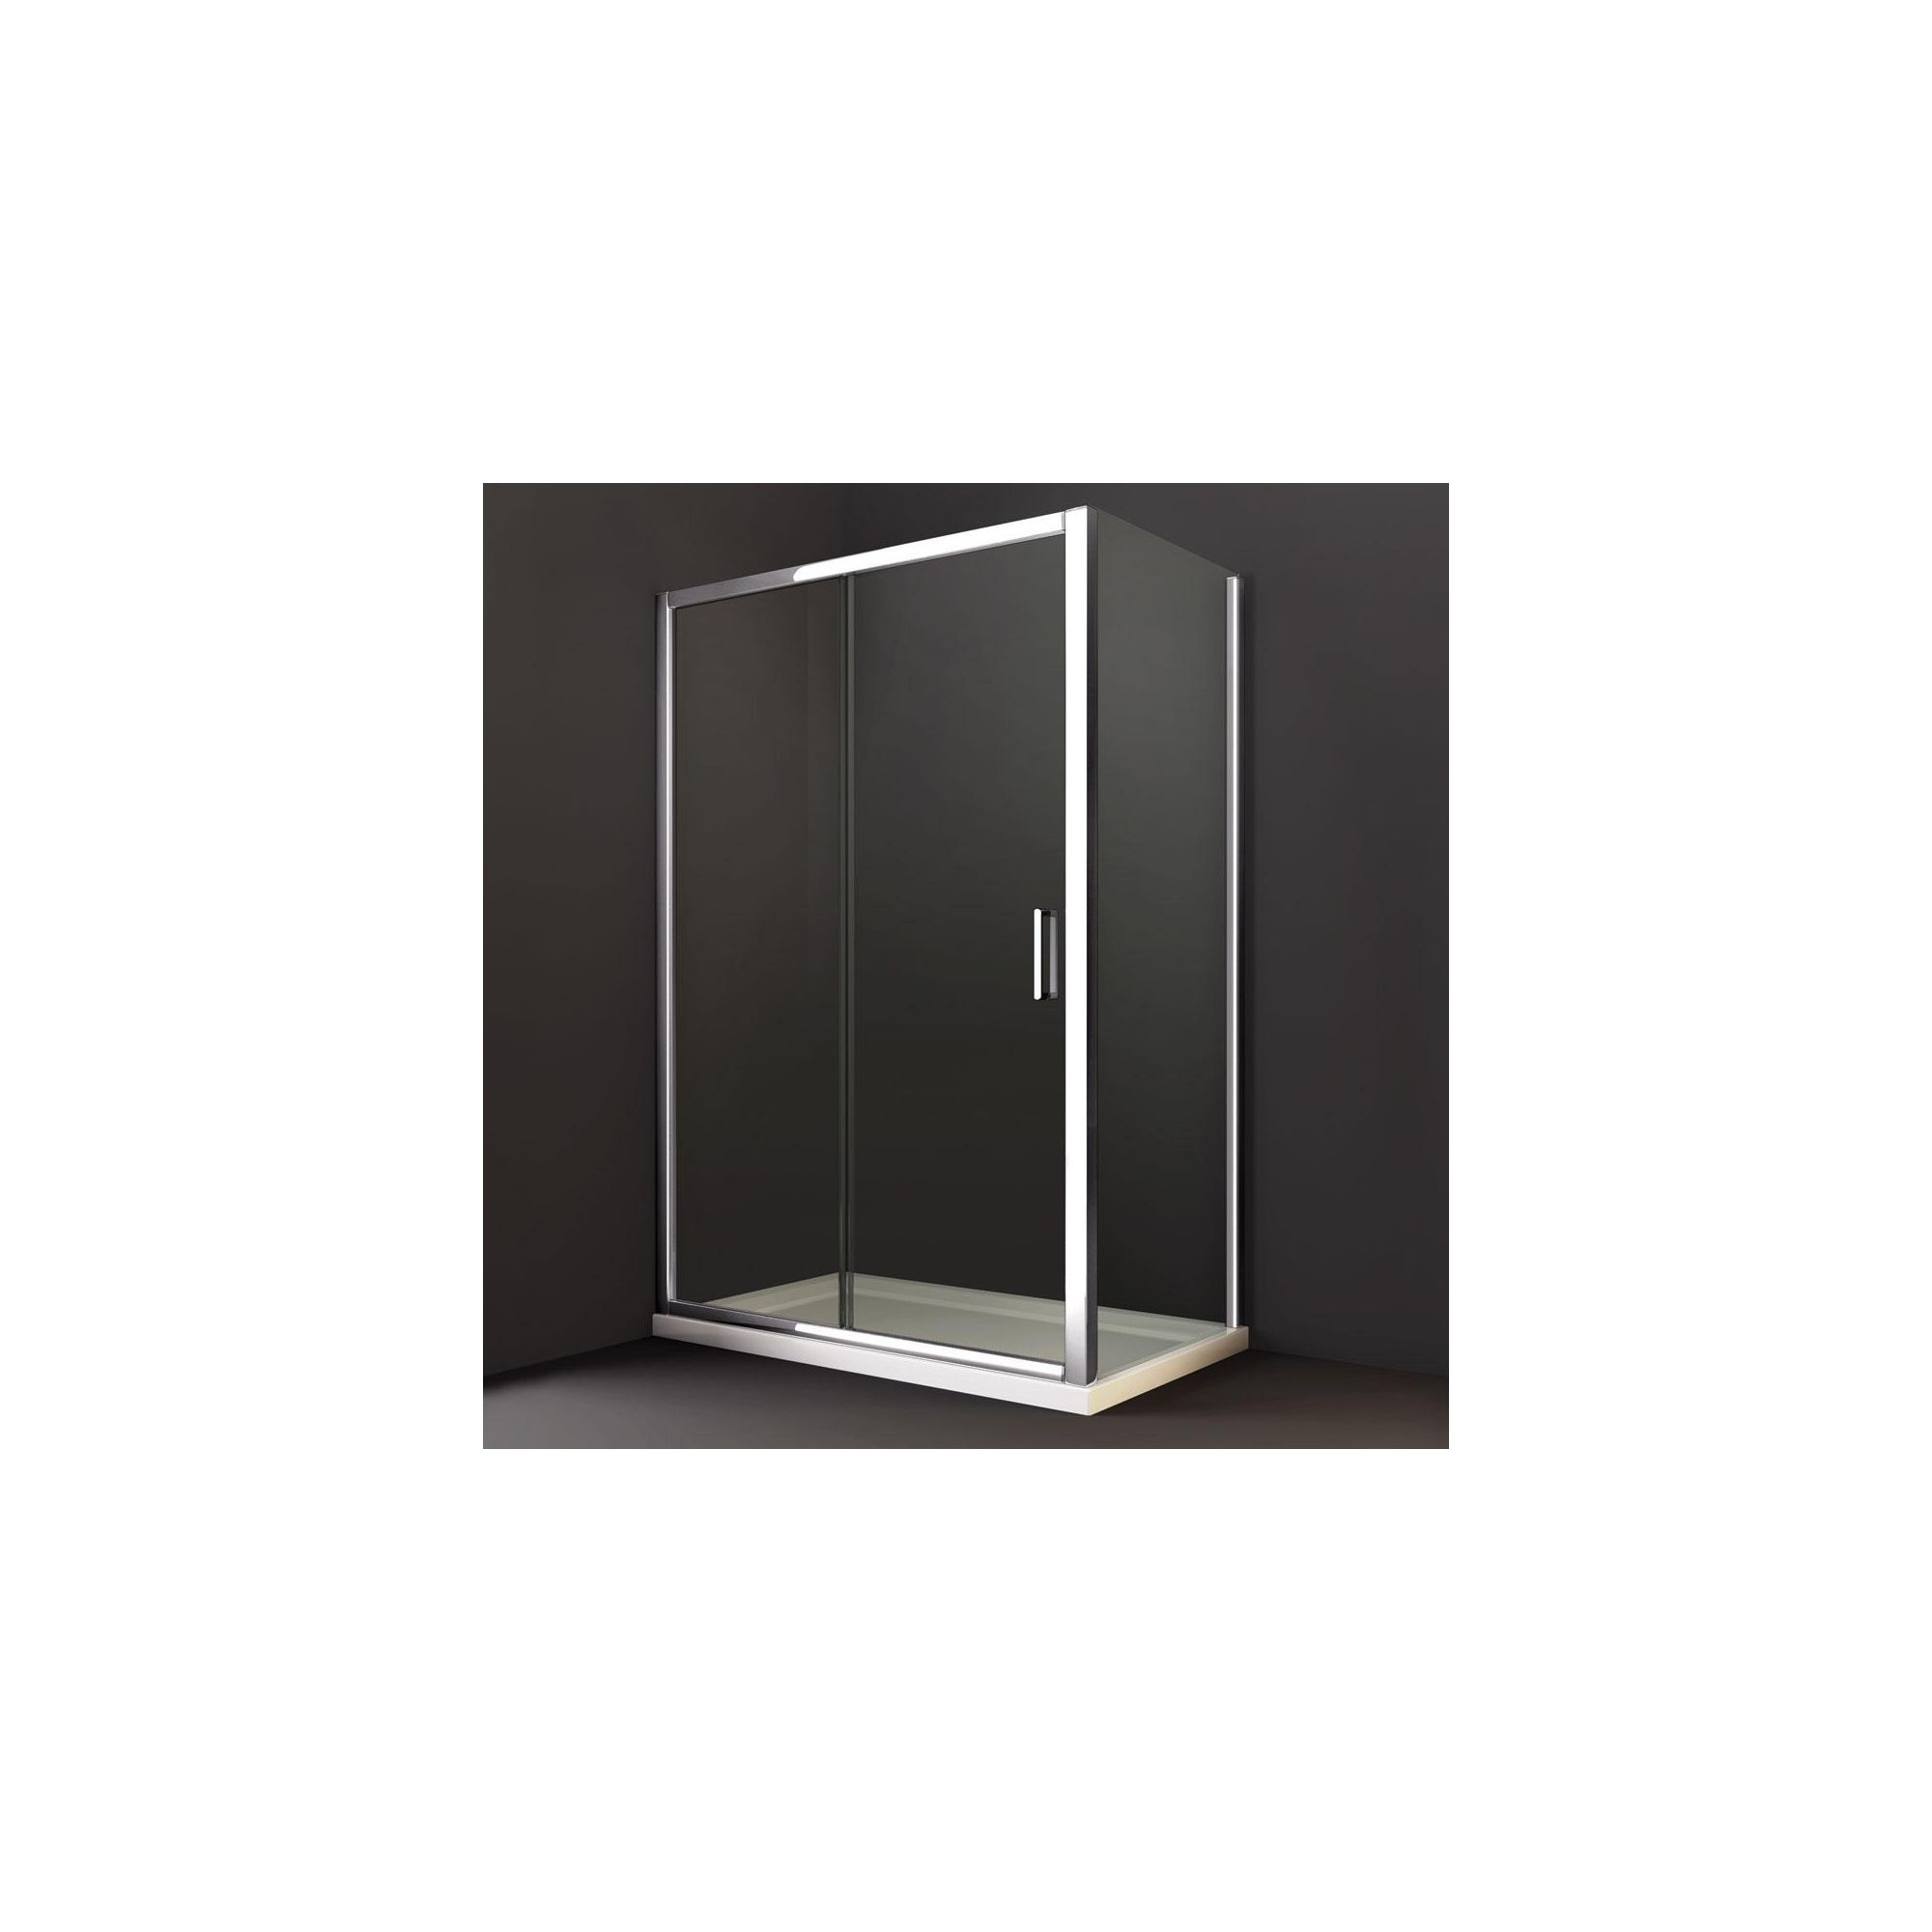 Merlyn Series 8 Sliding Shower Door, 1100mm Wide, Chrome Frame, 8mm Glass at Tesco Direct